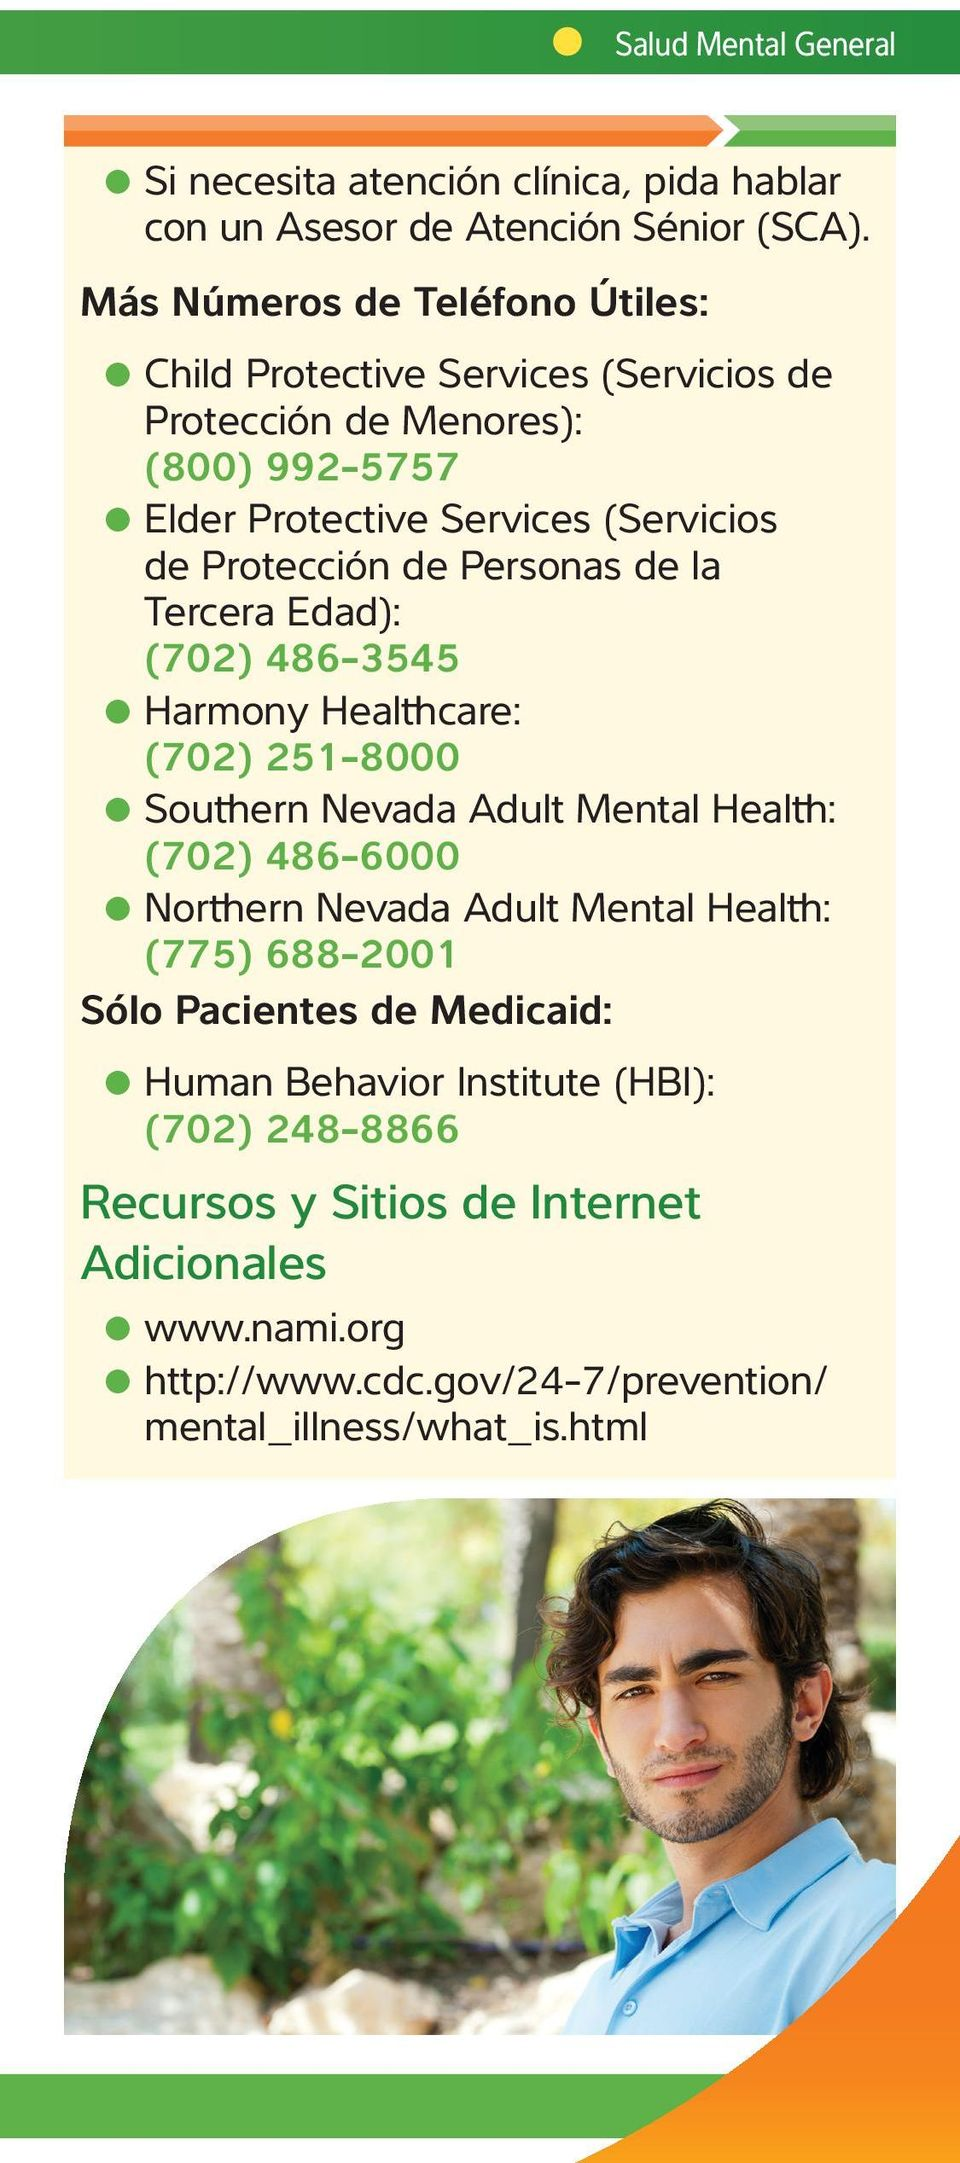 de Personas de la Tercera Edad): (702) 486-3545 Harmony Healthcare: (702) 251-8000 Southern Nevada Adult Mental Health: (702) 486-6000 Northern Nevada Adult